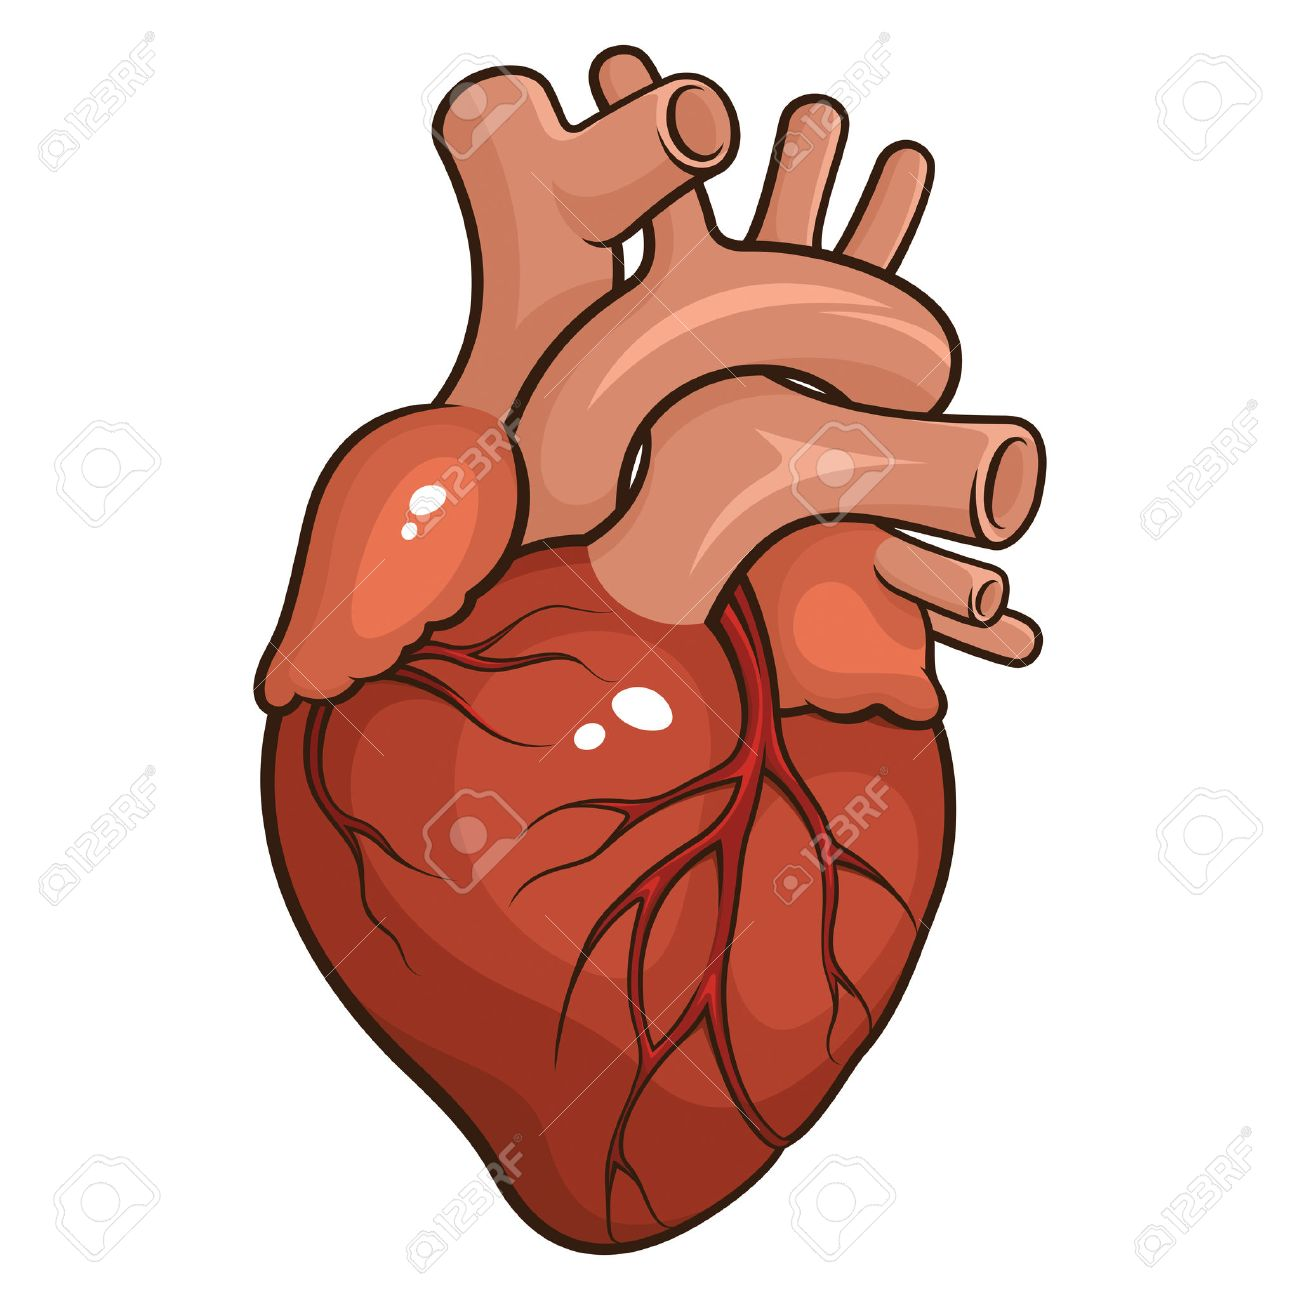 1300x1300 Clipart Heart Anatomy Anatomical Human Clip Art Photo